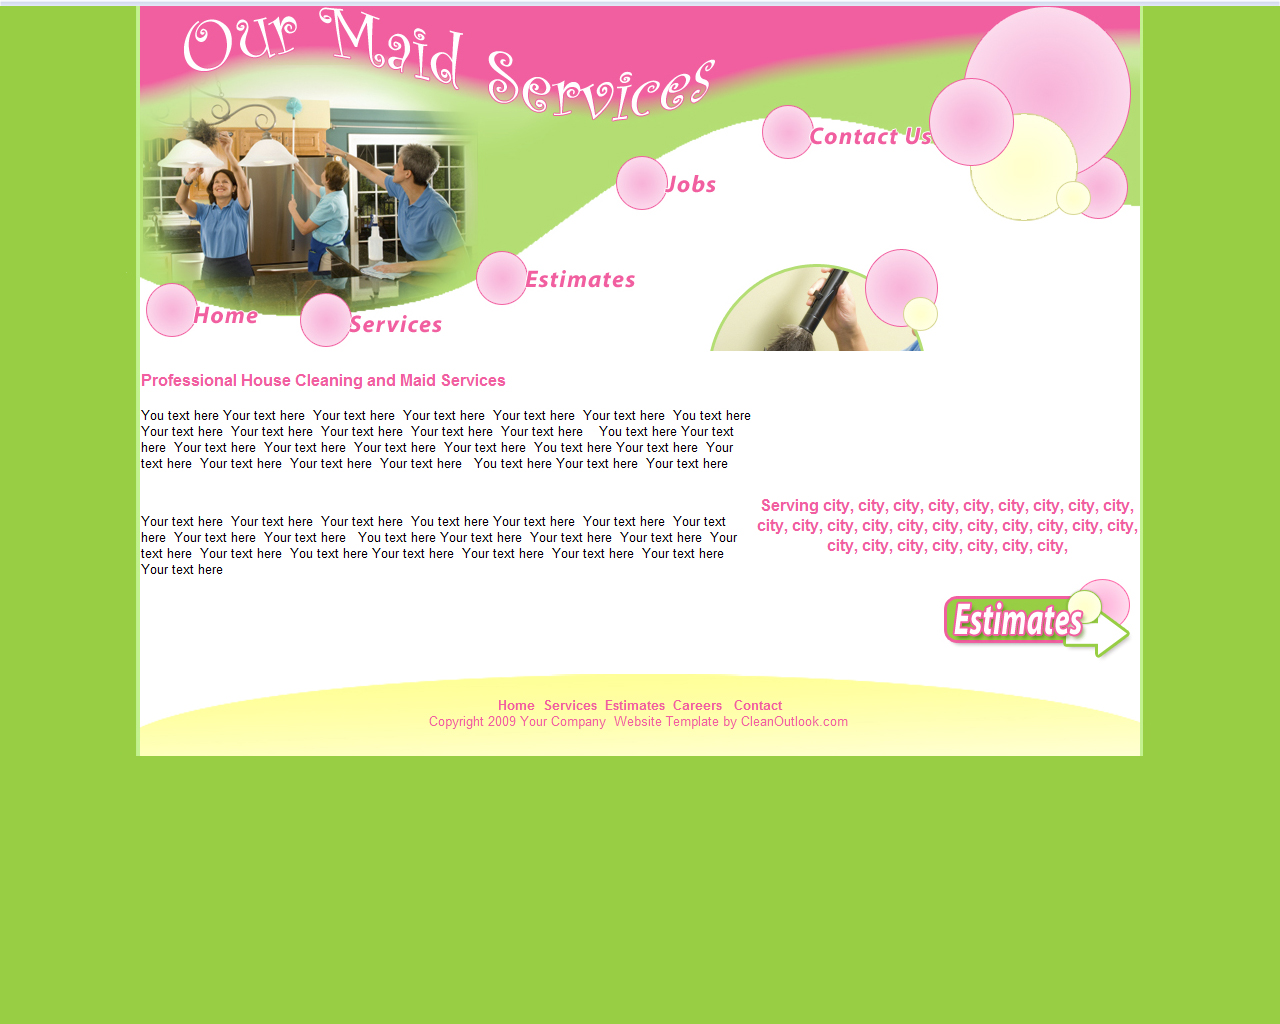 website templates for cleaning companies affordable website designs a fun and bubbly residential cleaning service or maid service company website template a focus on bubbles and green